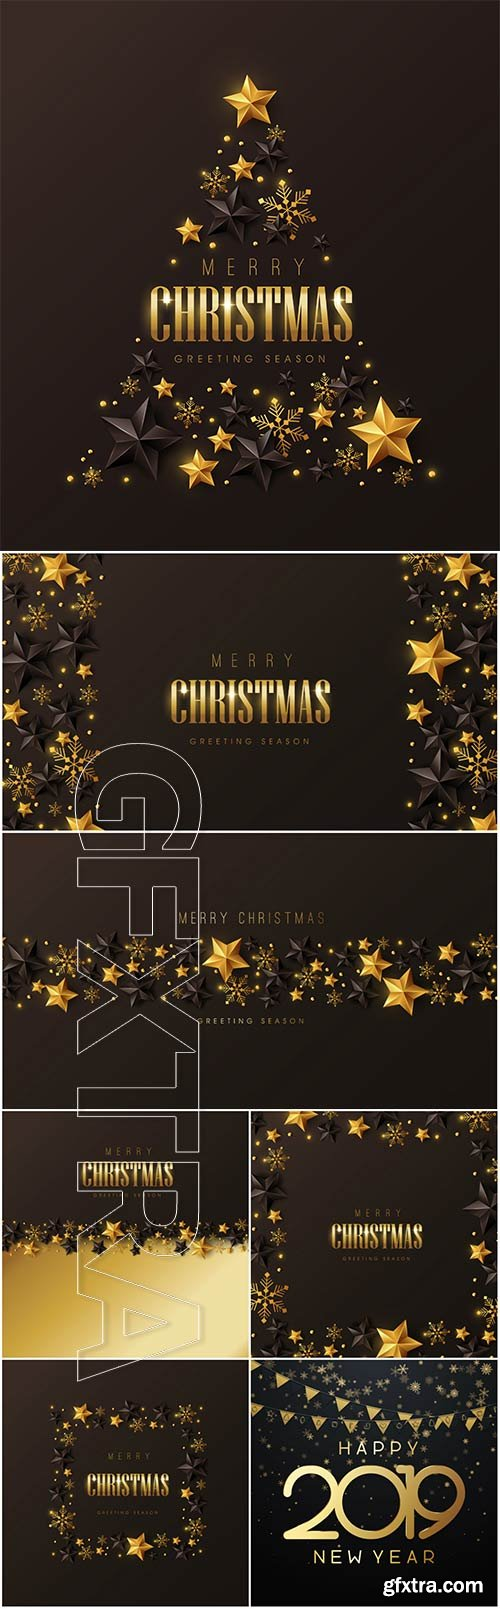 Christmas and New Year vector backgrounds with golden decor